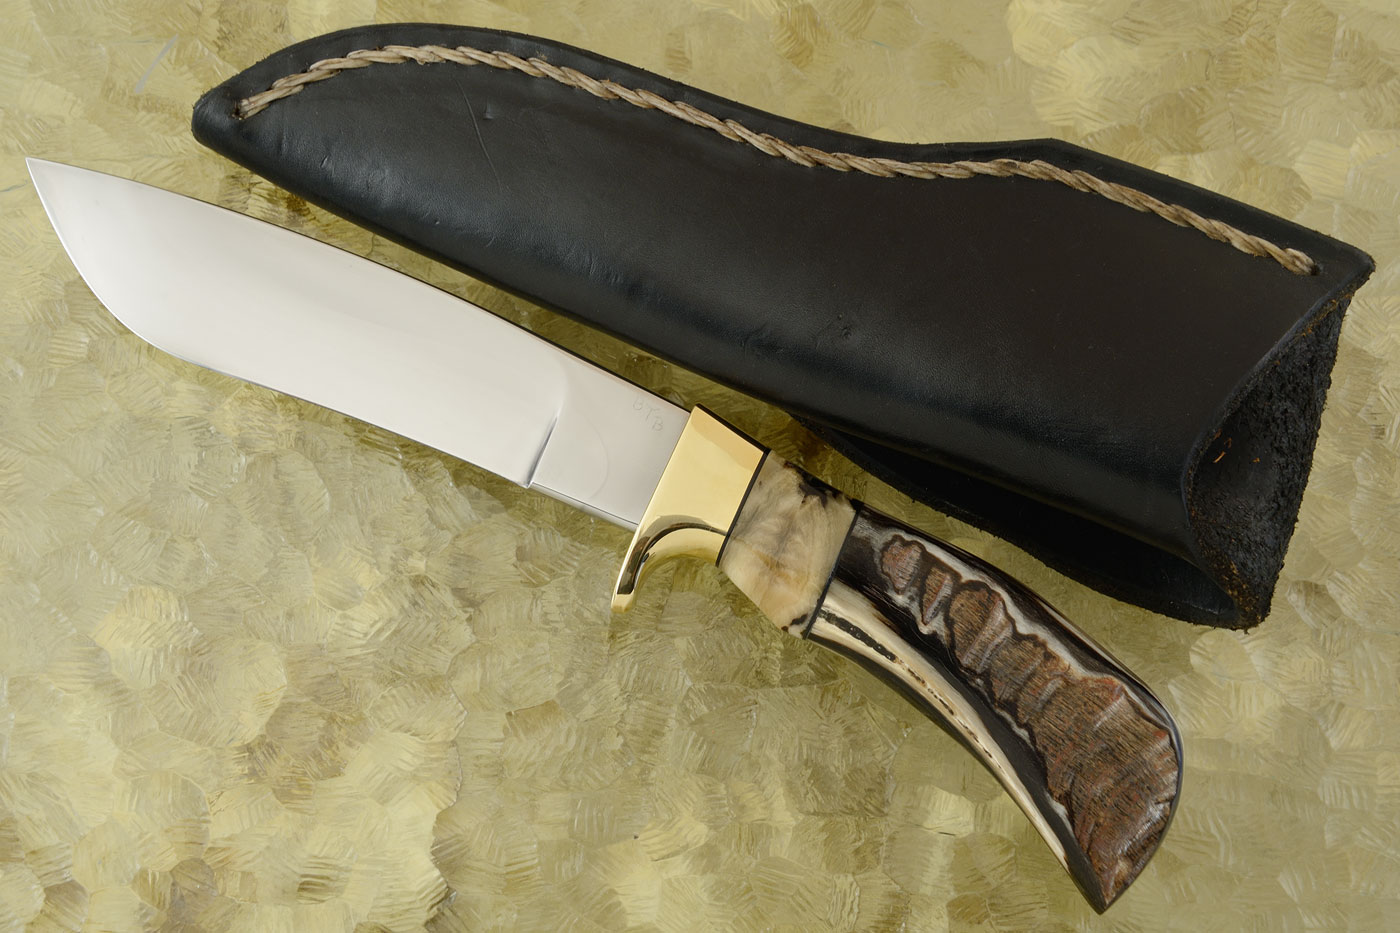 Black Pronghorn Camp Knife (6-2/3